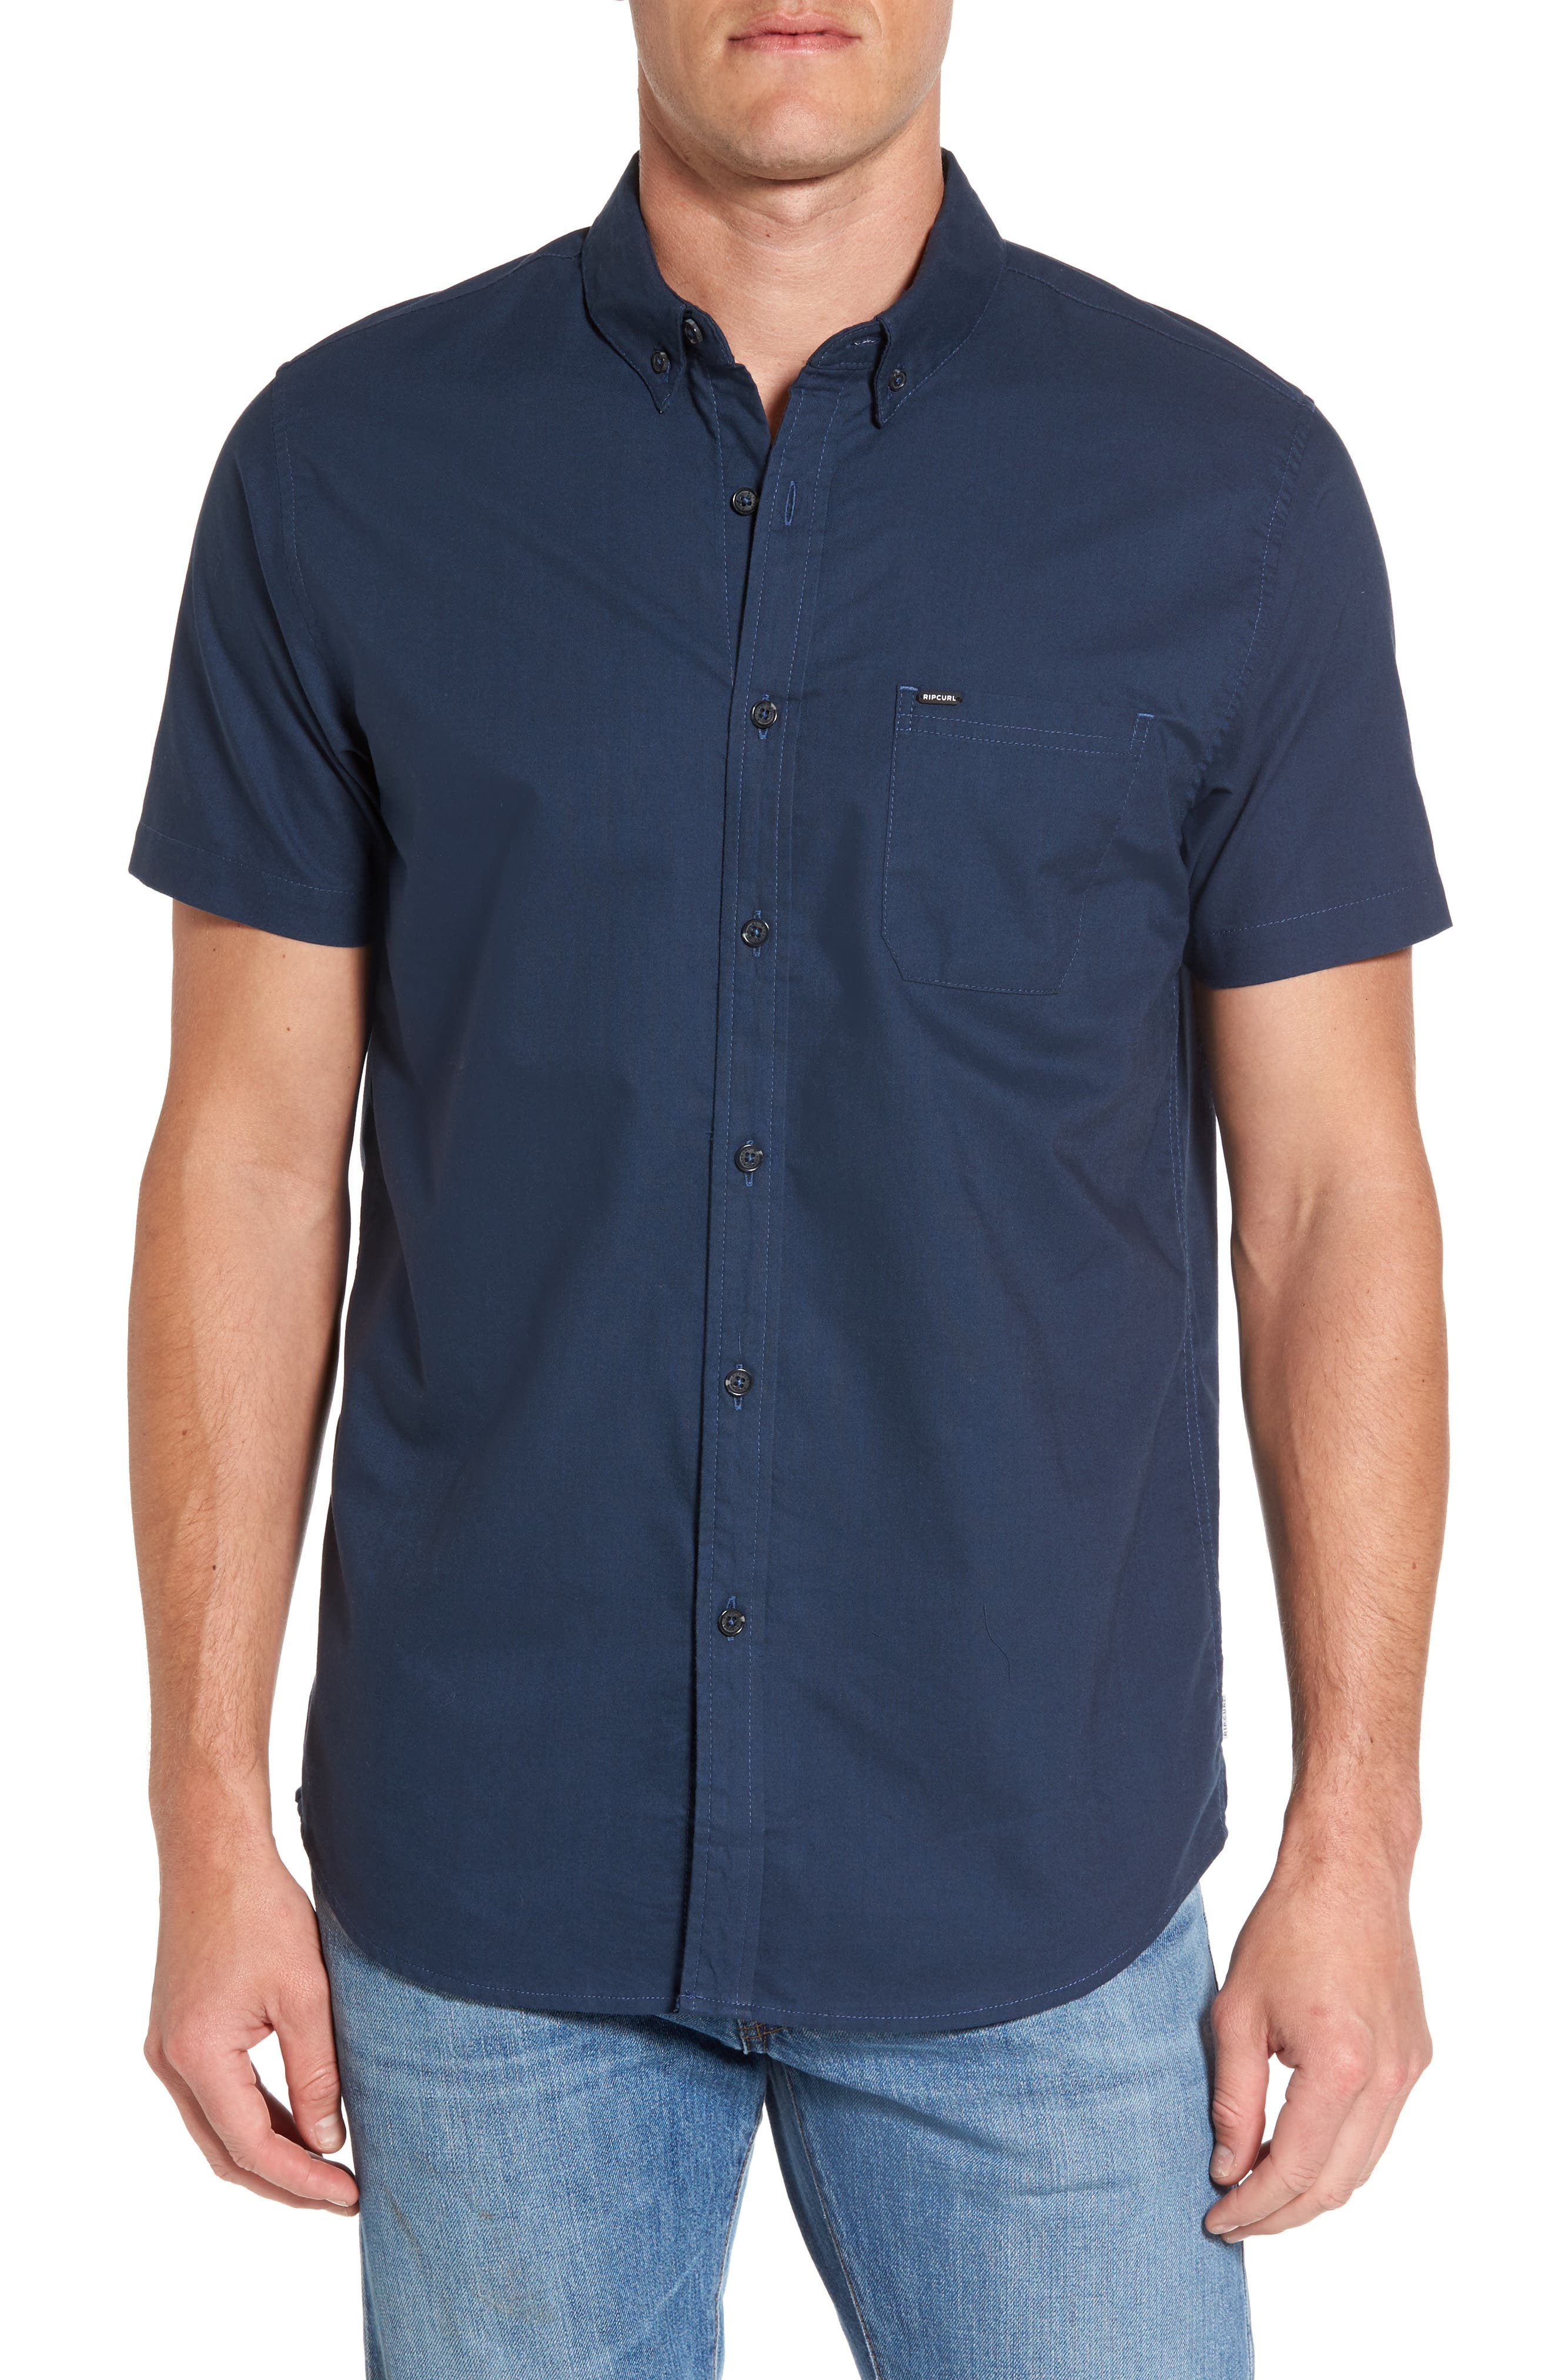 Ourtime Woven Shirt,                         Main,                         color, Navy